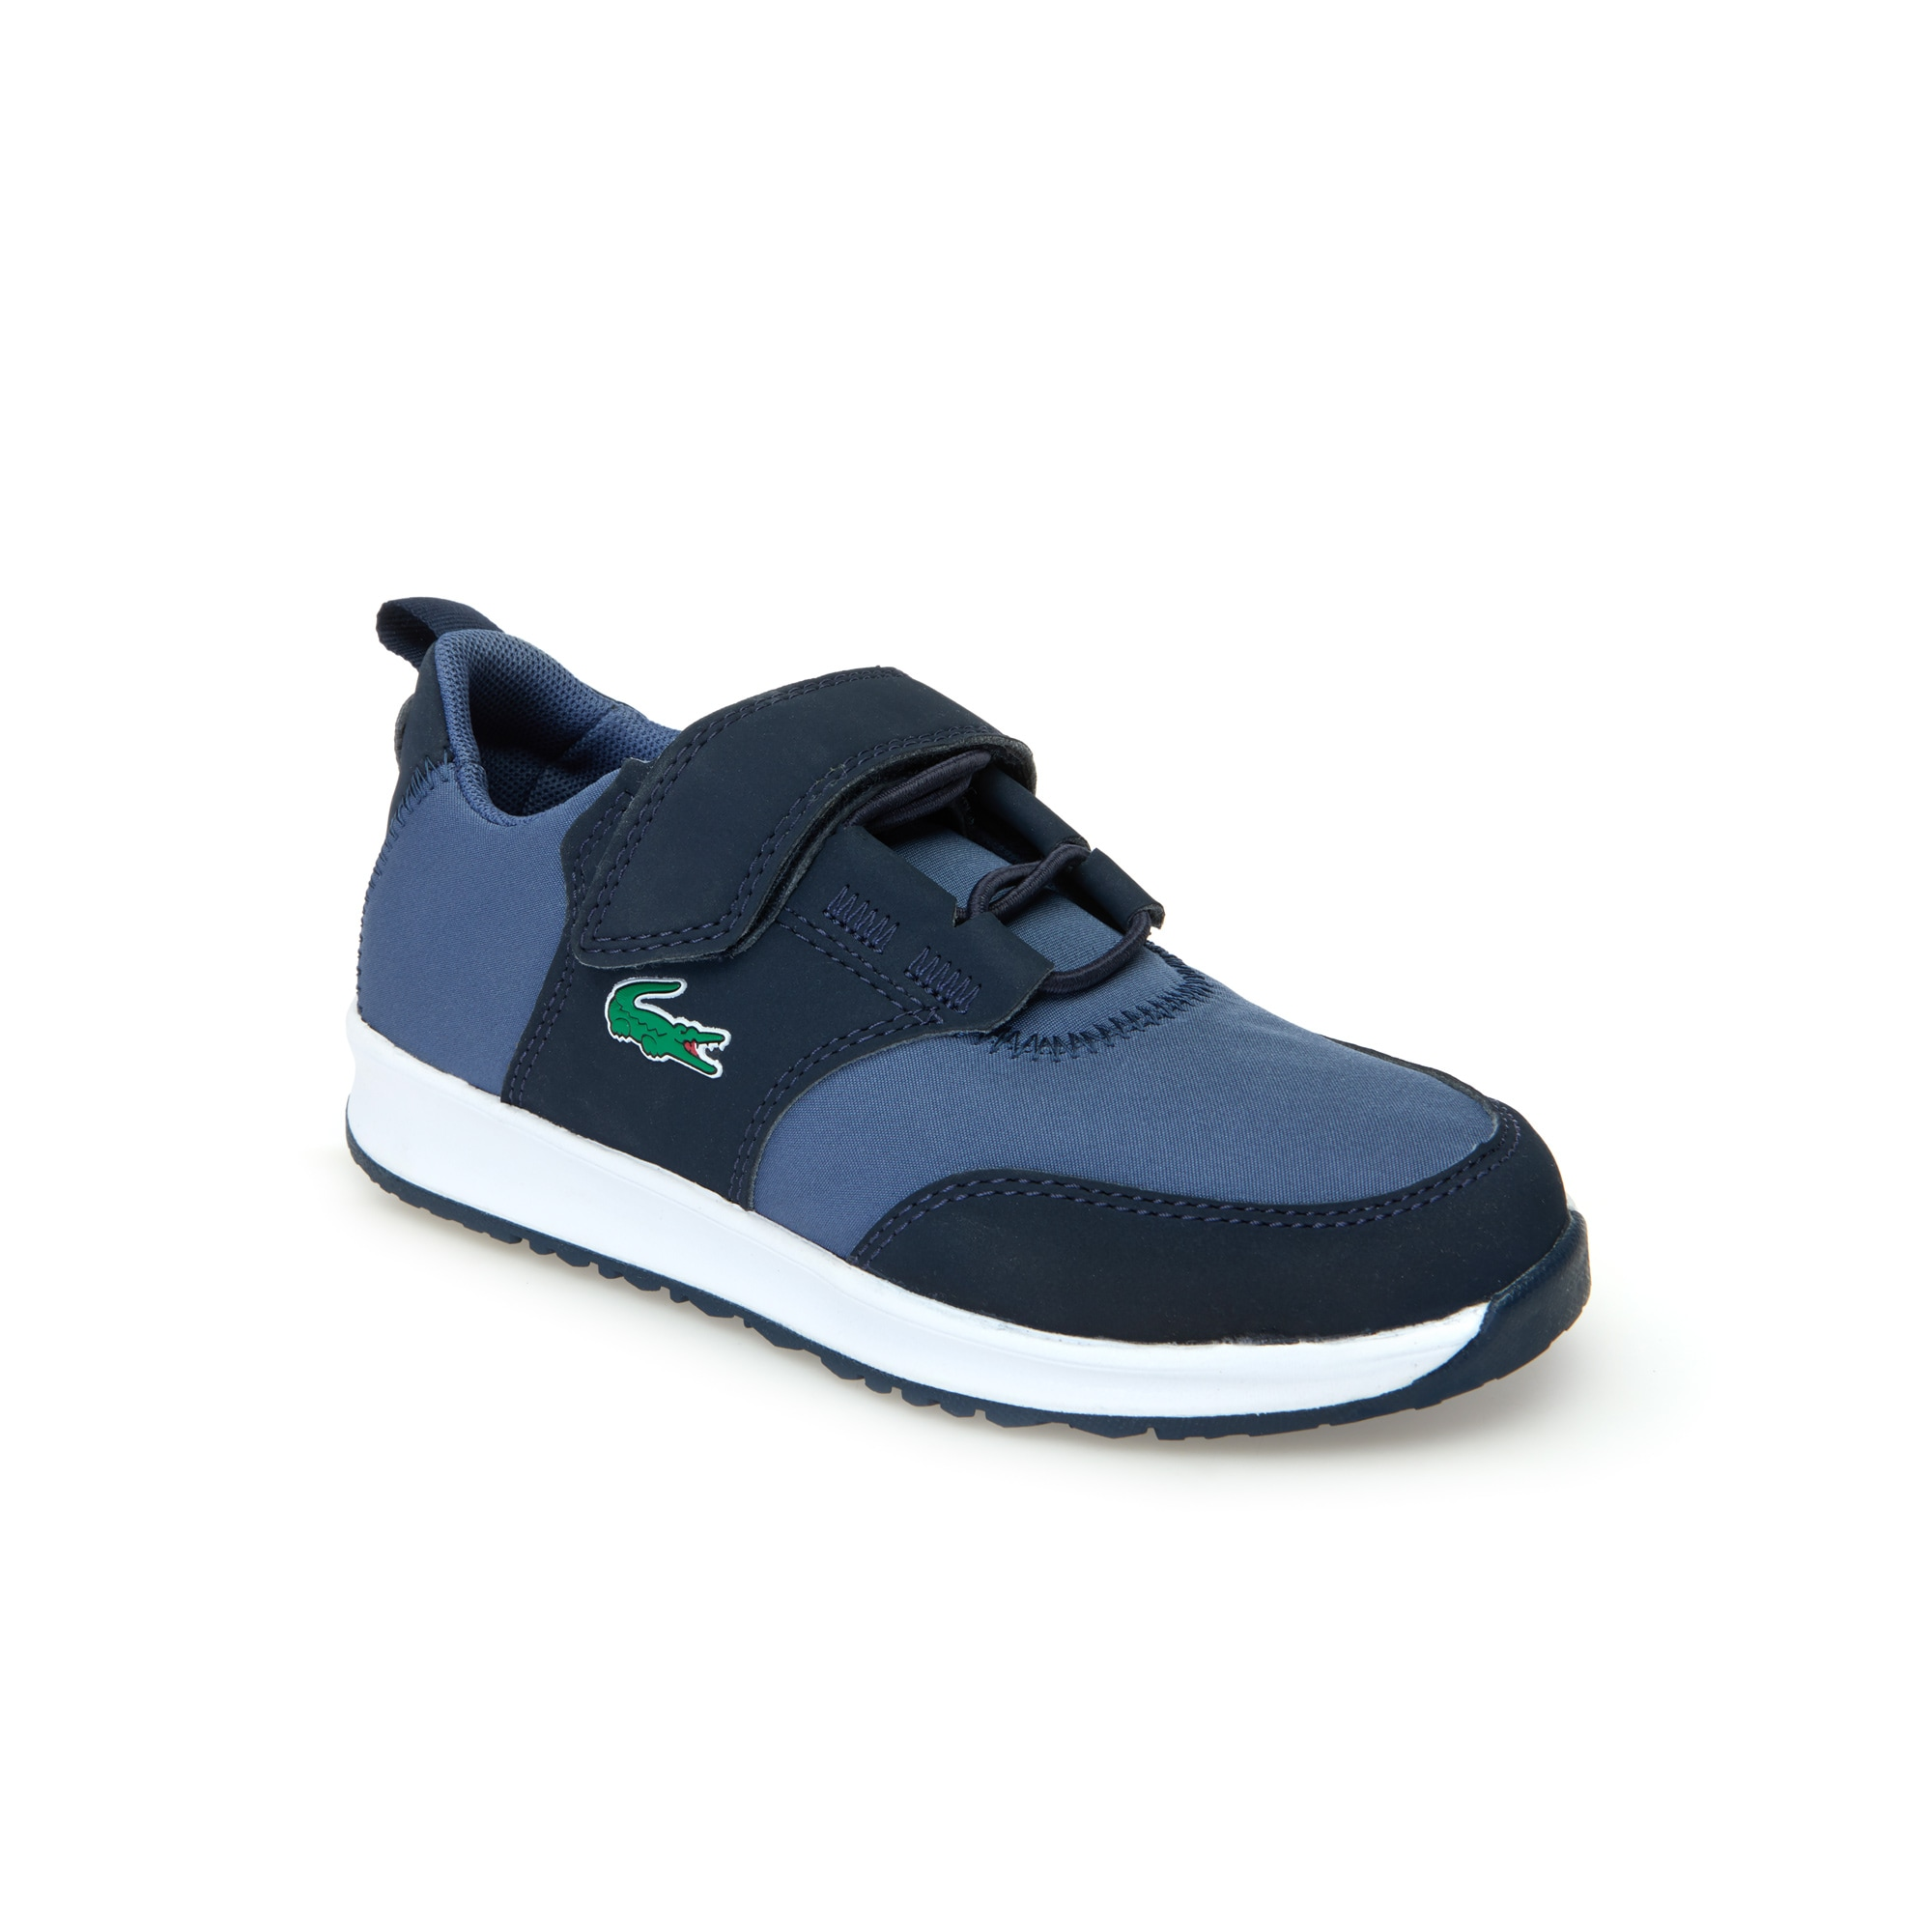 Children's L.ight Textile and Synthetic Trainers